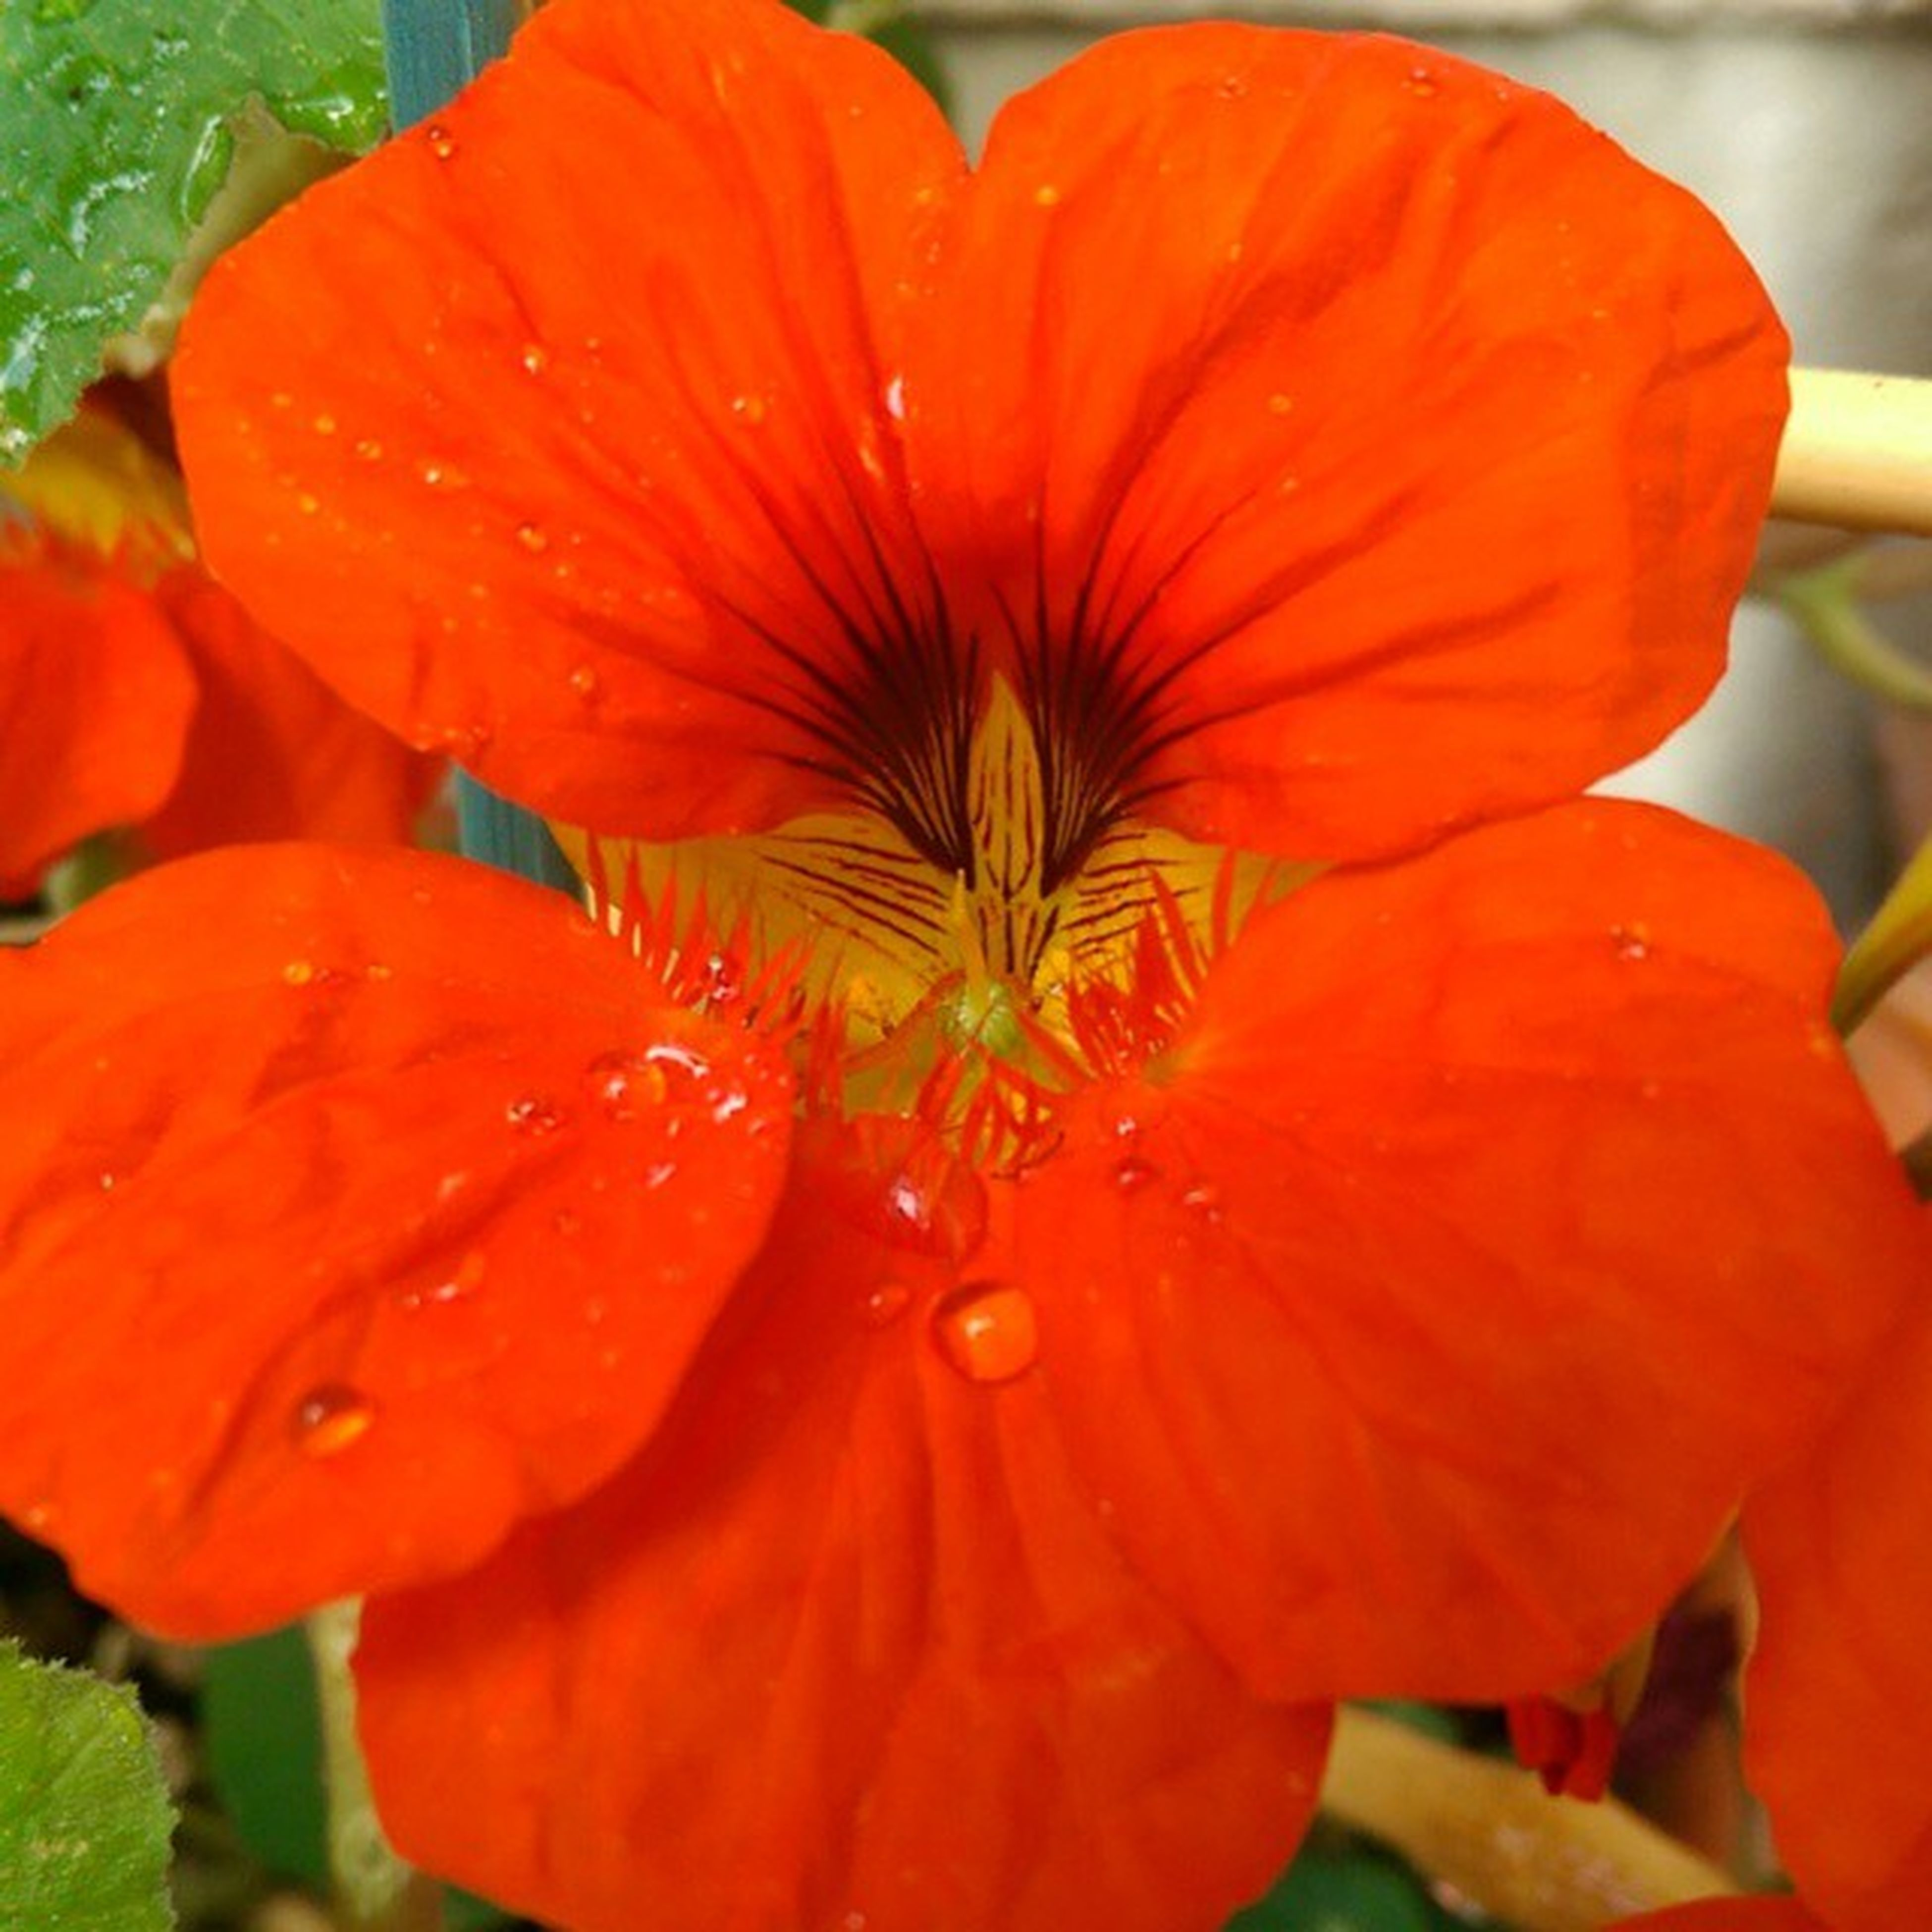 flower, petal, freshness, flower head, fragility, growth, beauty in nature, red, close-up, blooming, nature, plant, orange color, single flower, focus on foreground, pollen, in bloom, stamen, leaf, day